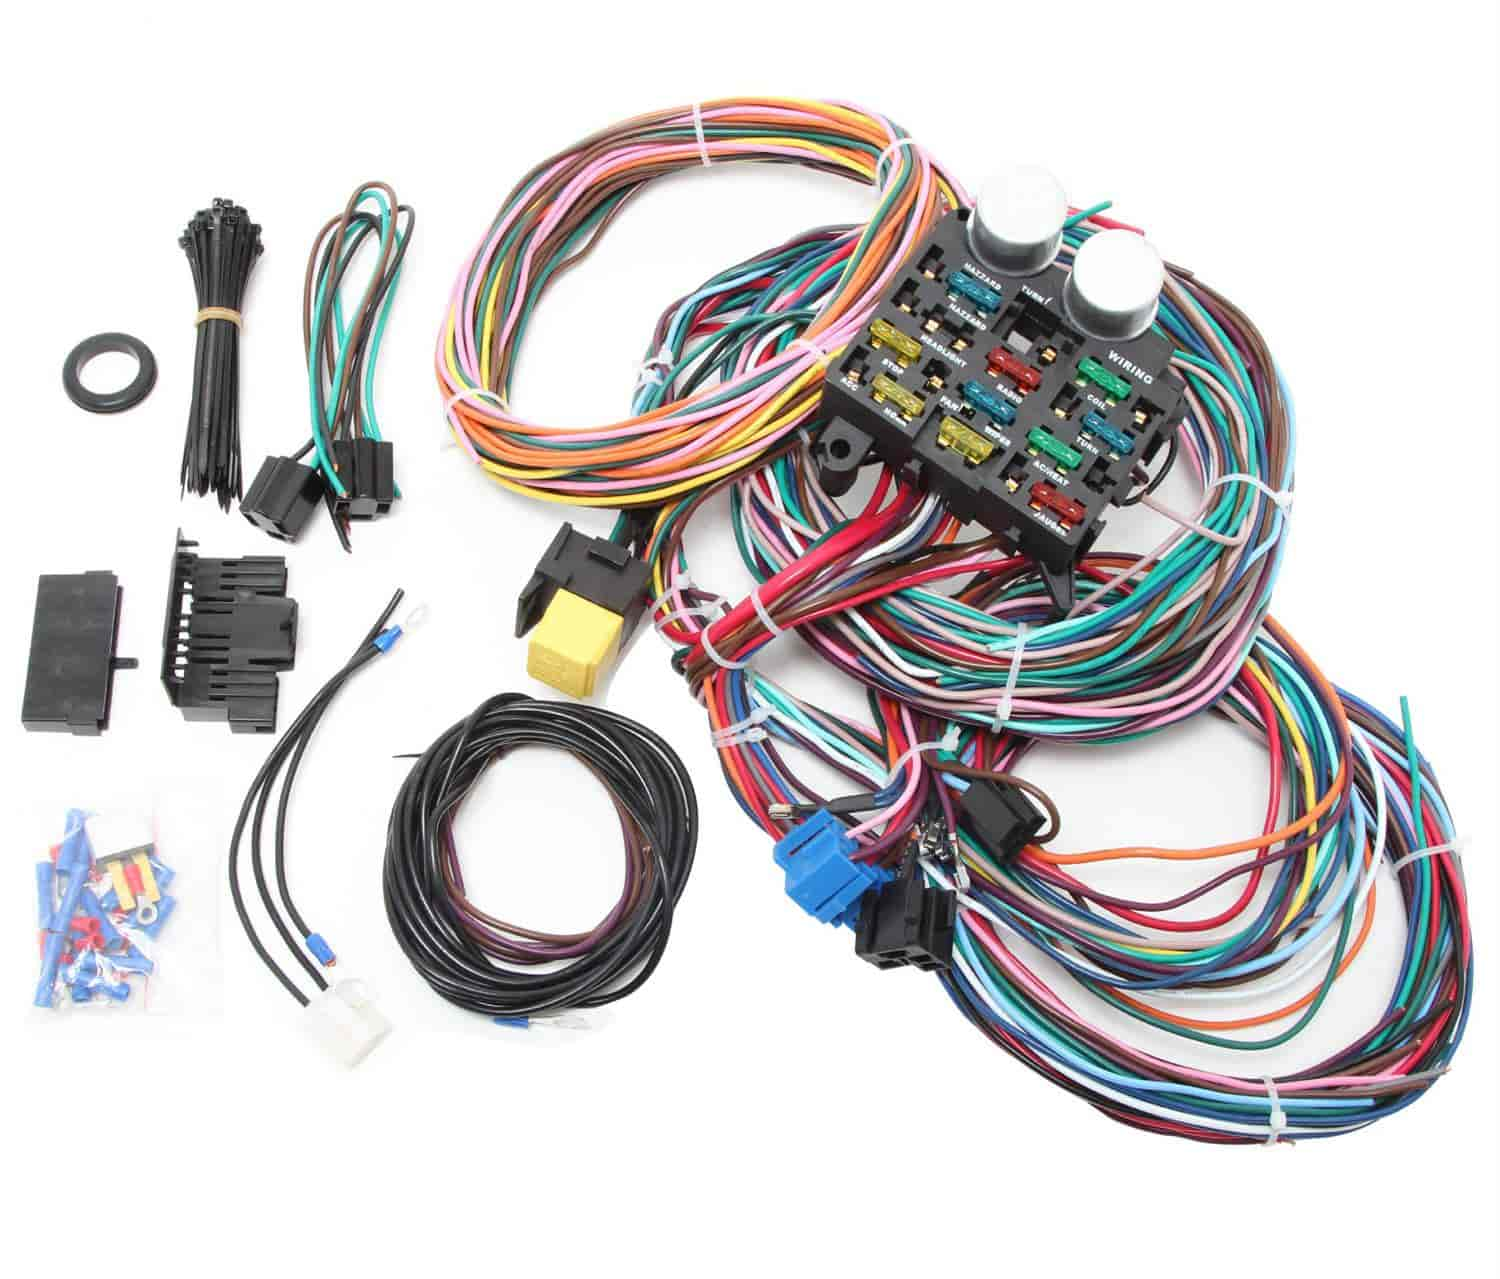 707 r1002x rpc r1002x universal 12 circuit wire harness kit jegs VW Wiring Harness Kits at n-0.co